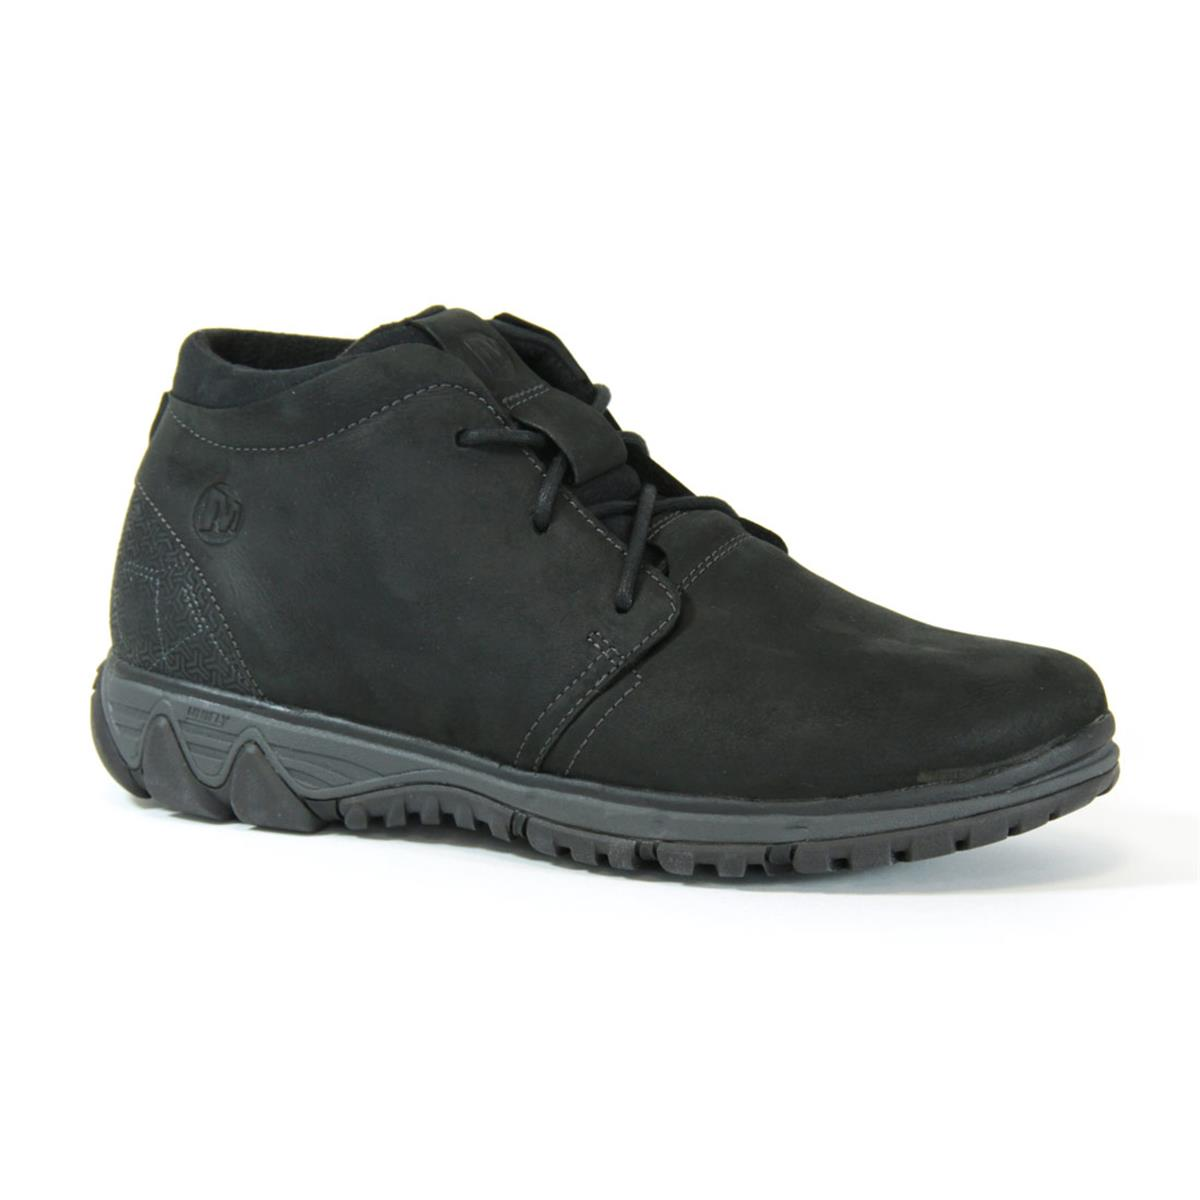 a6718ce4 Merrell All Out Blazer Chukka North Mens Shoes (Black) |  directsportsEshop.co.uk